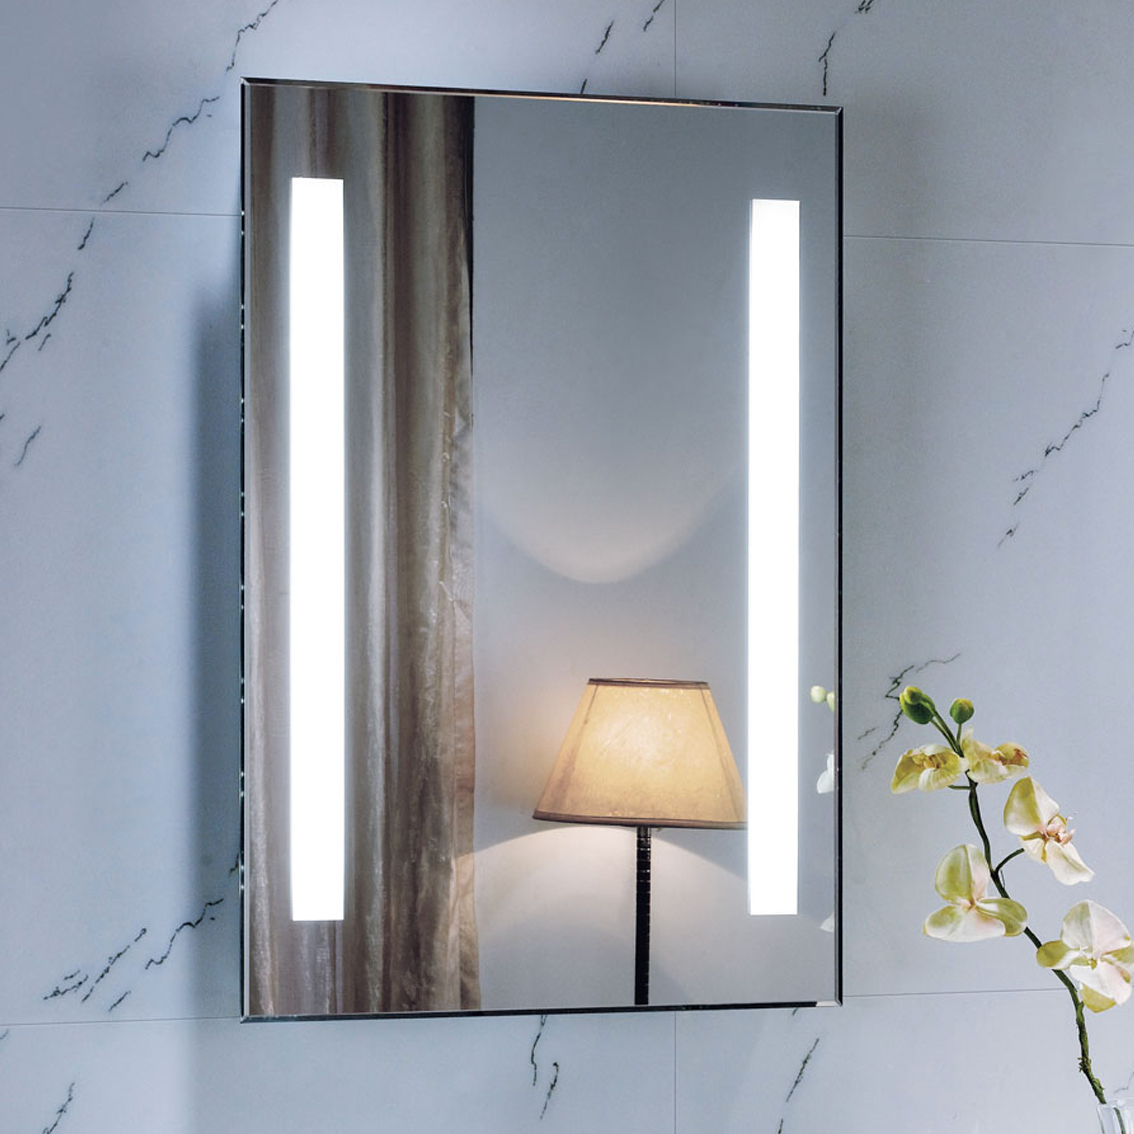 Illuminated Mirrors Bathroom: 700 X 500 Backlit Bathroom Mirror Wall Mounted Demister